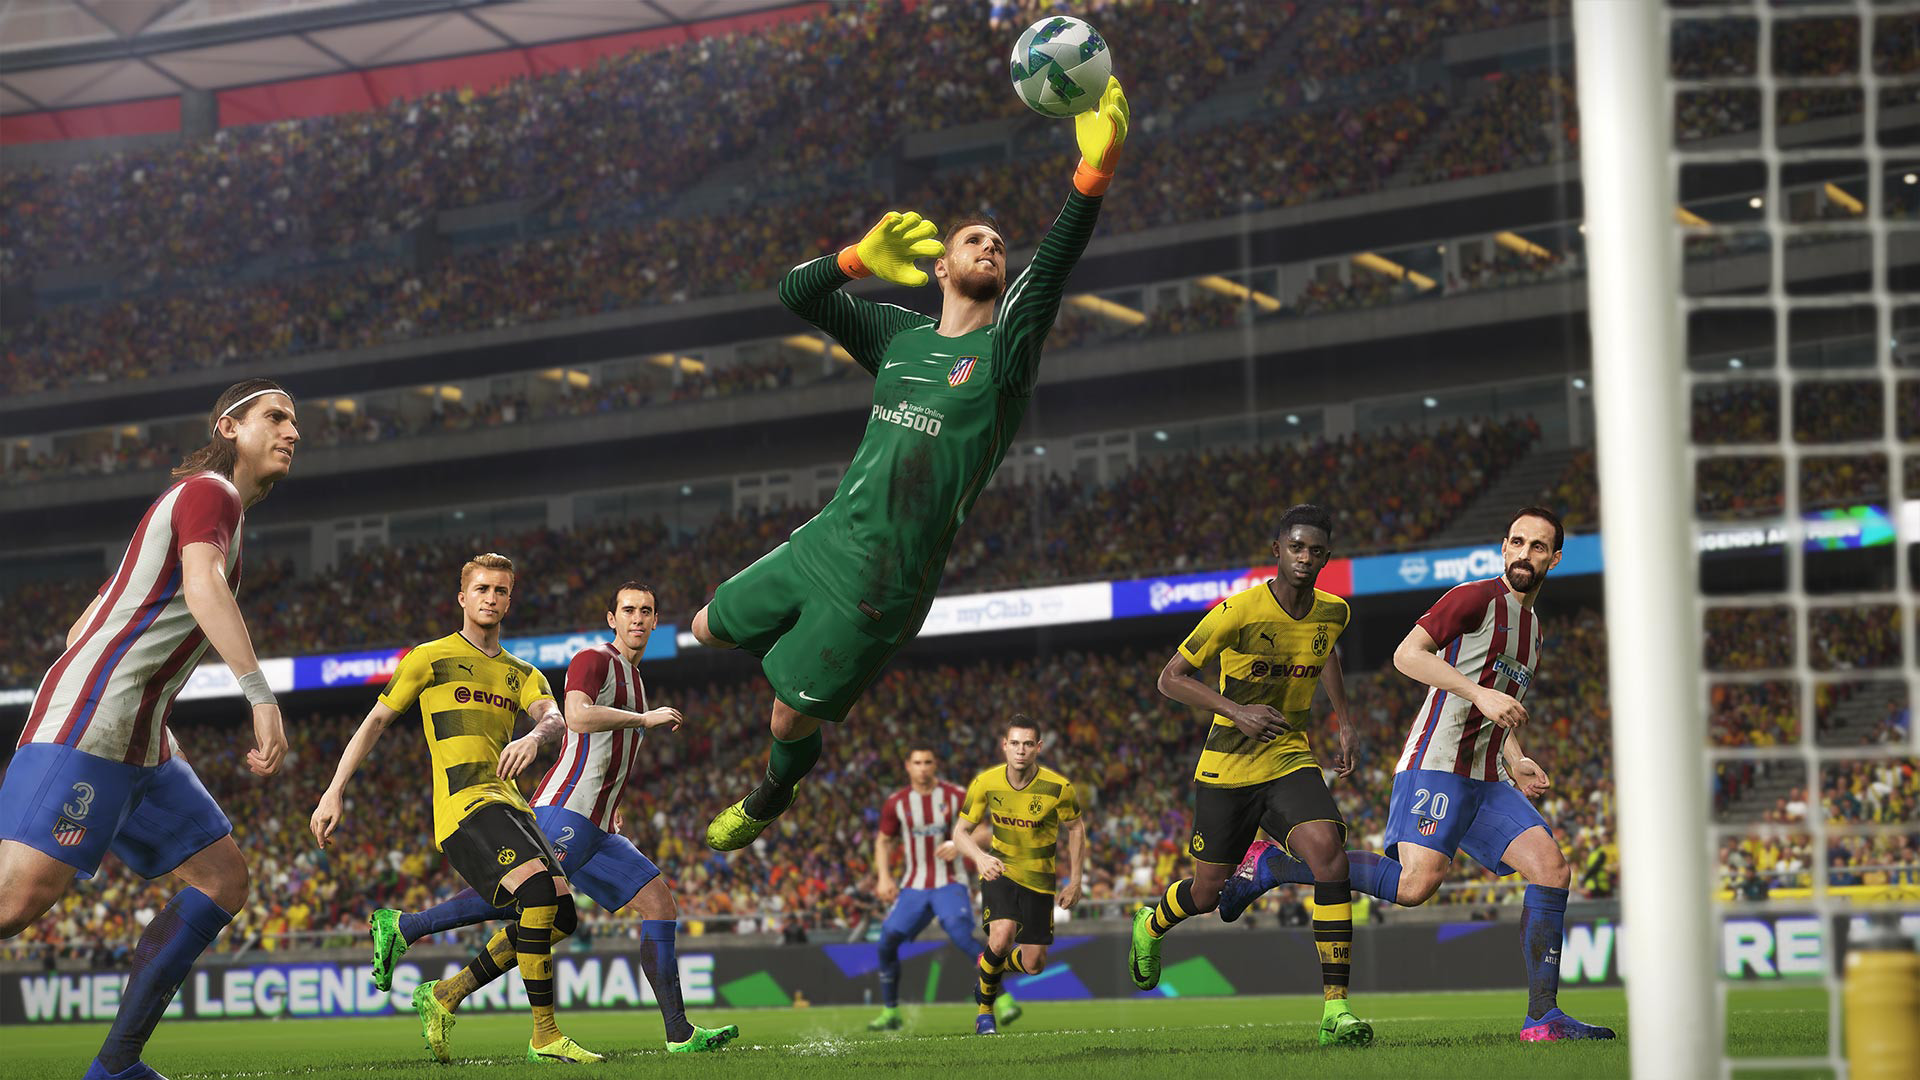 Pro Evolution Soccer 2018 System Requirements Can I Run It Pcgamebenchmark